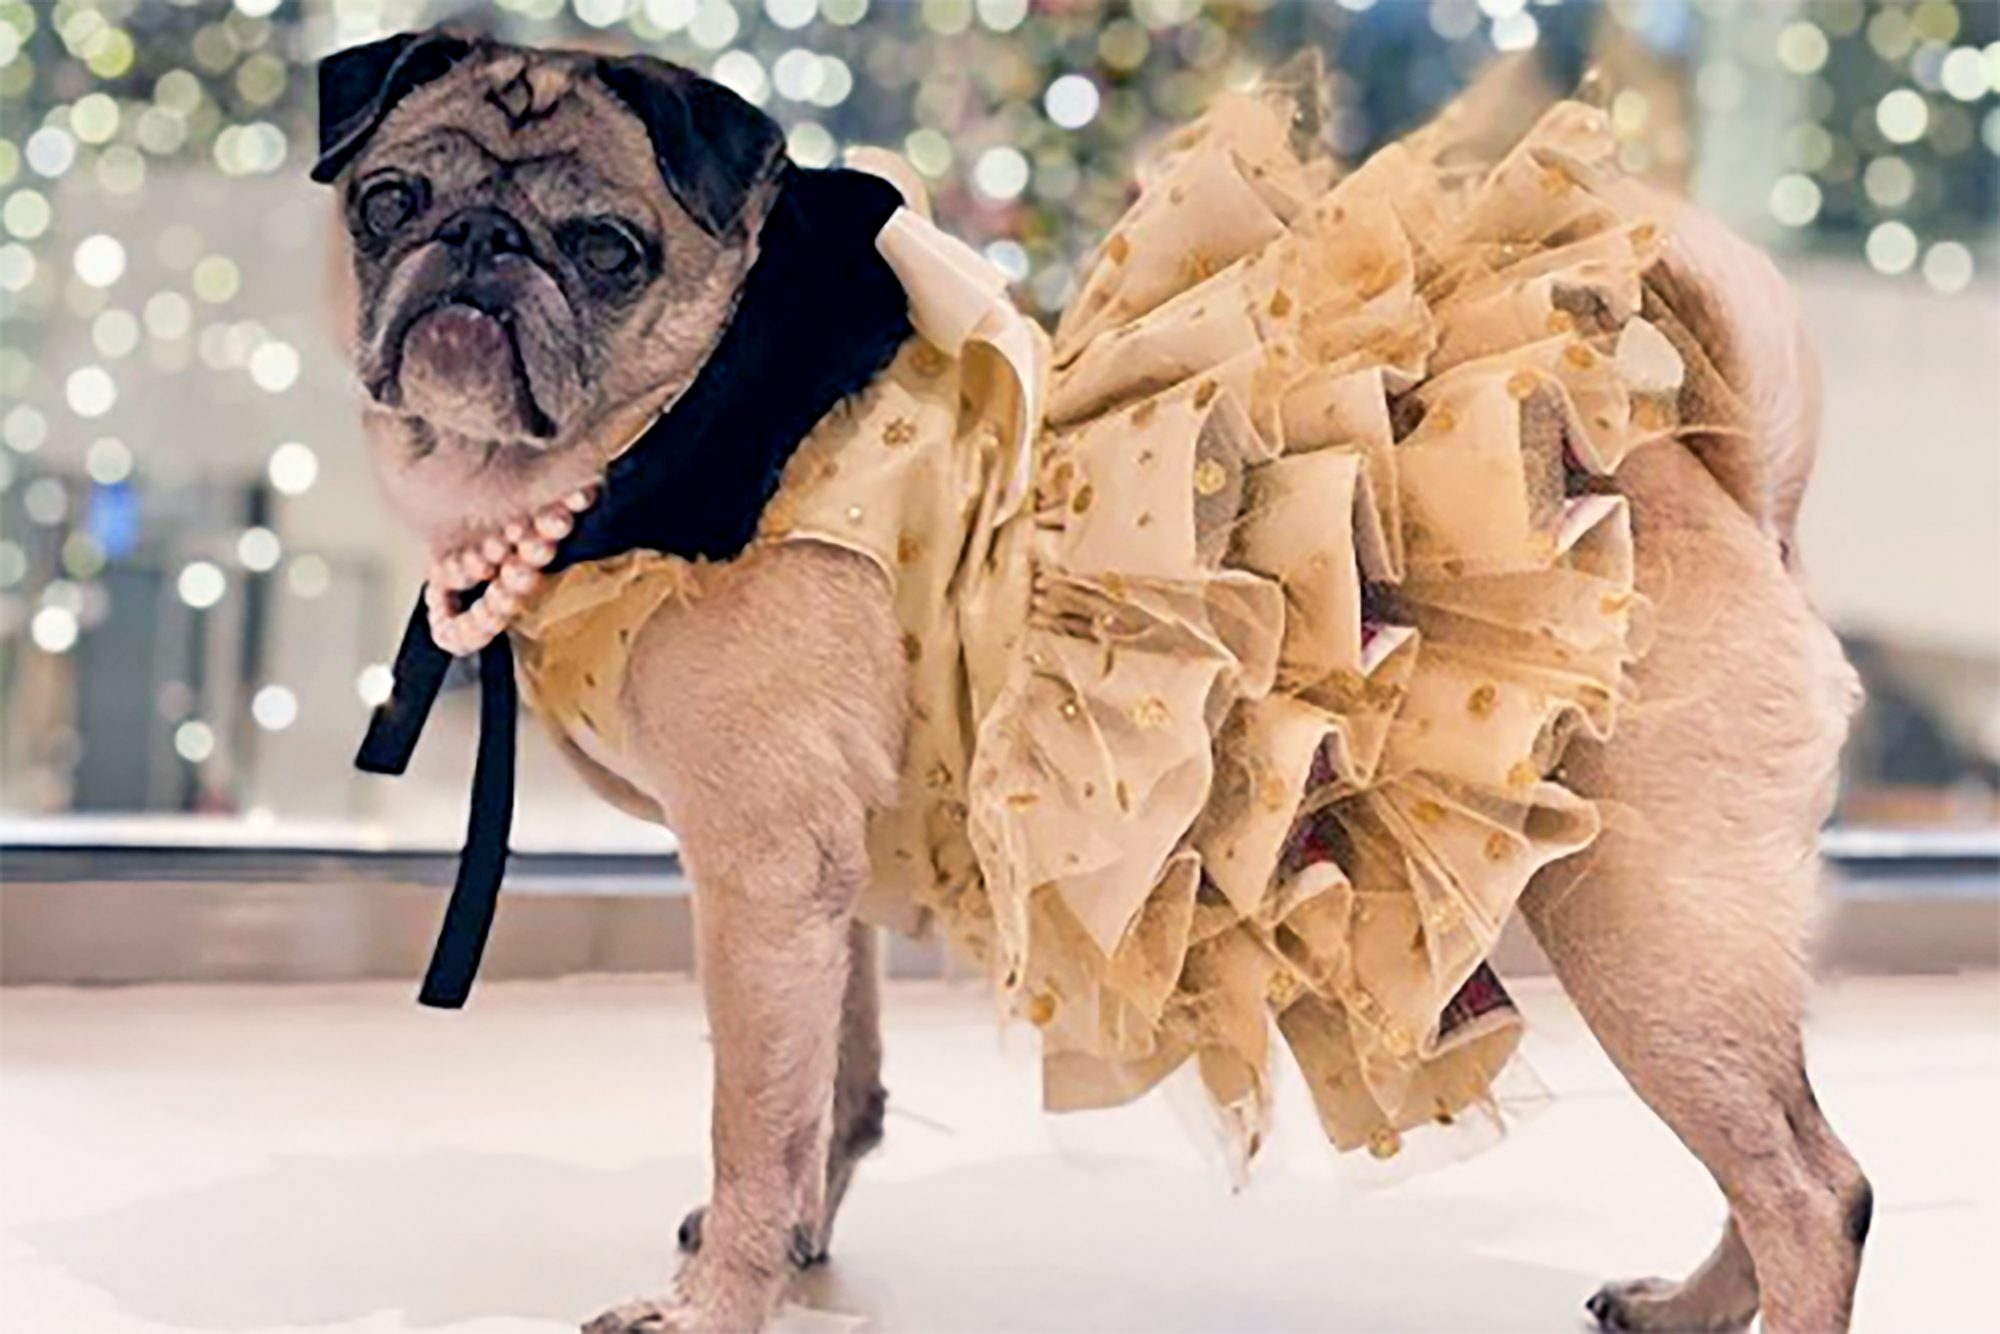 Miss Pickles the pug modeling and frilly dress and pearls